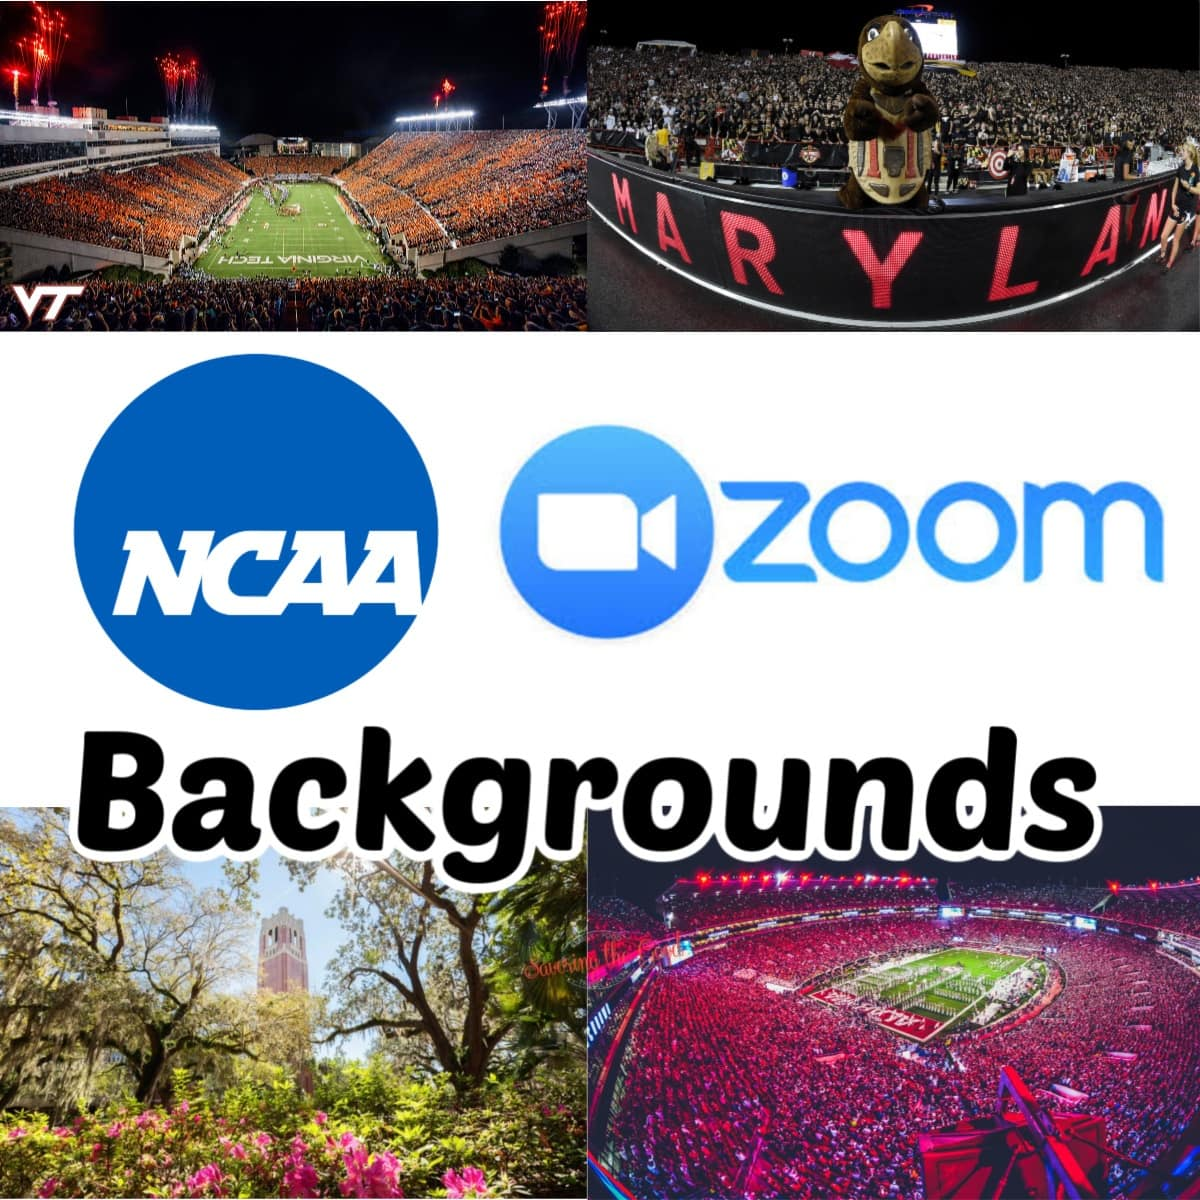 College Sports Teams Backgrounds graphic